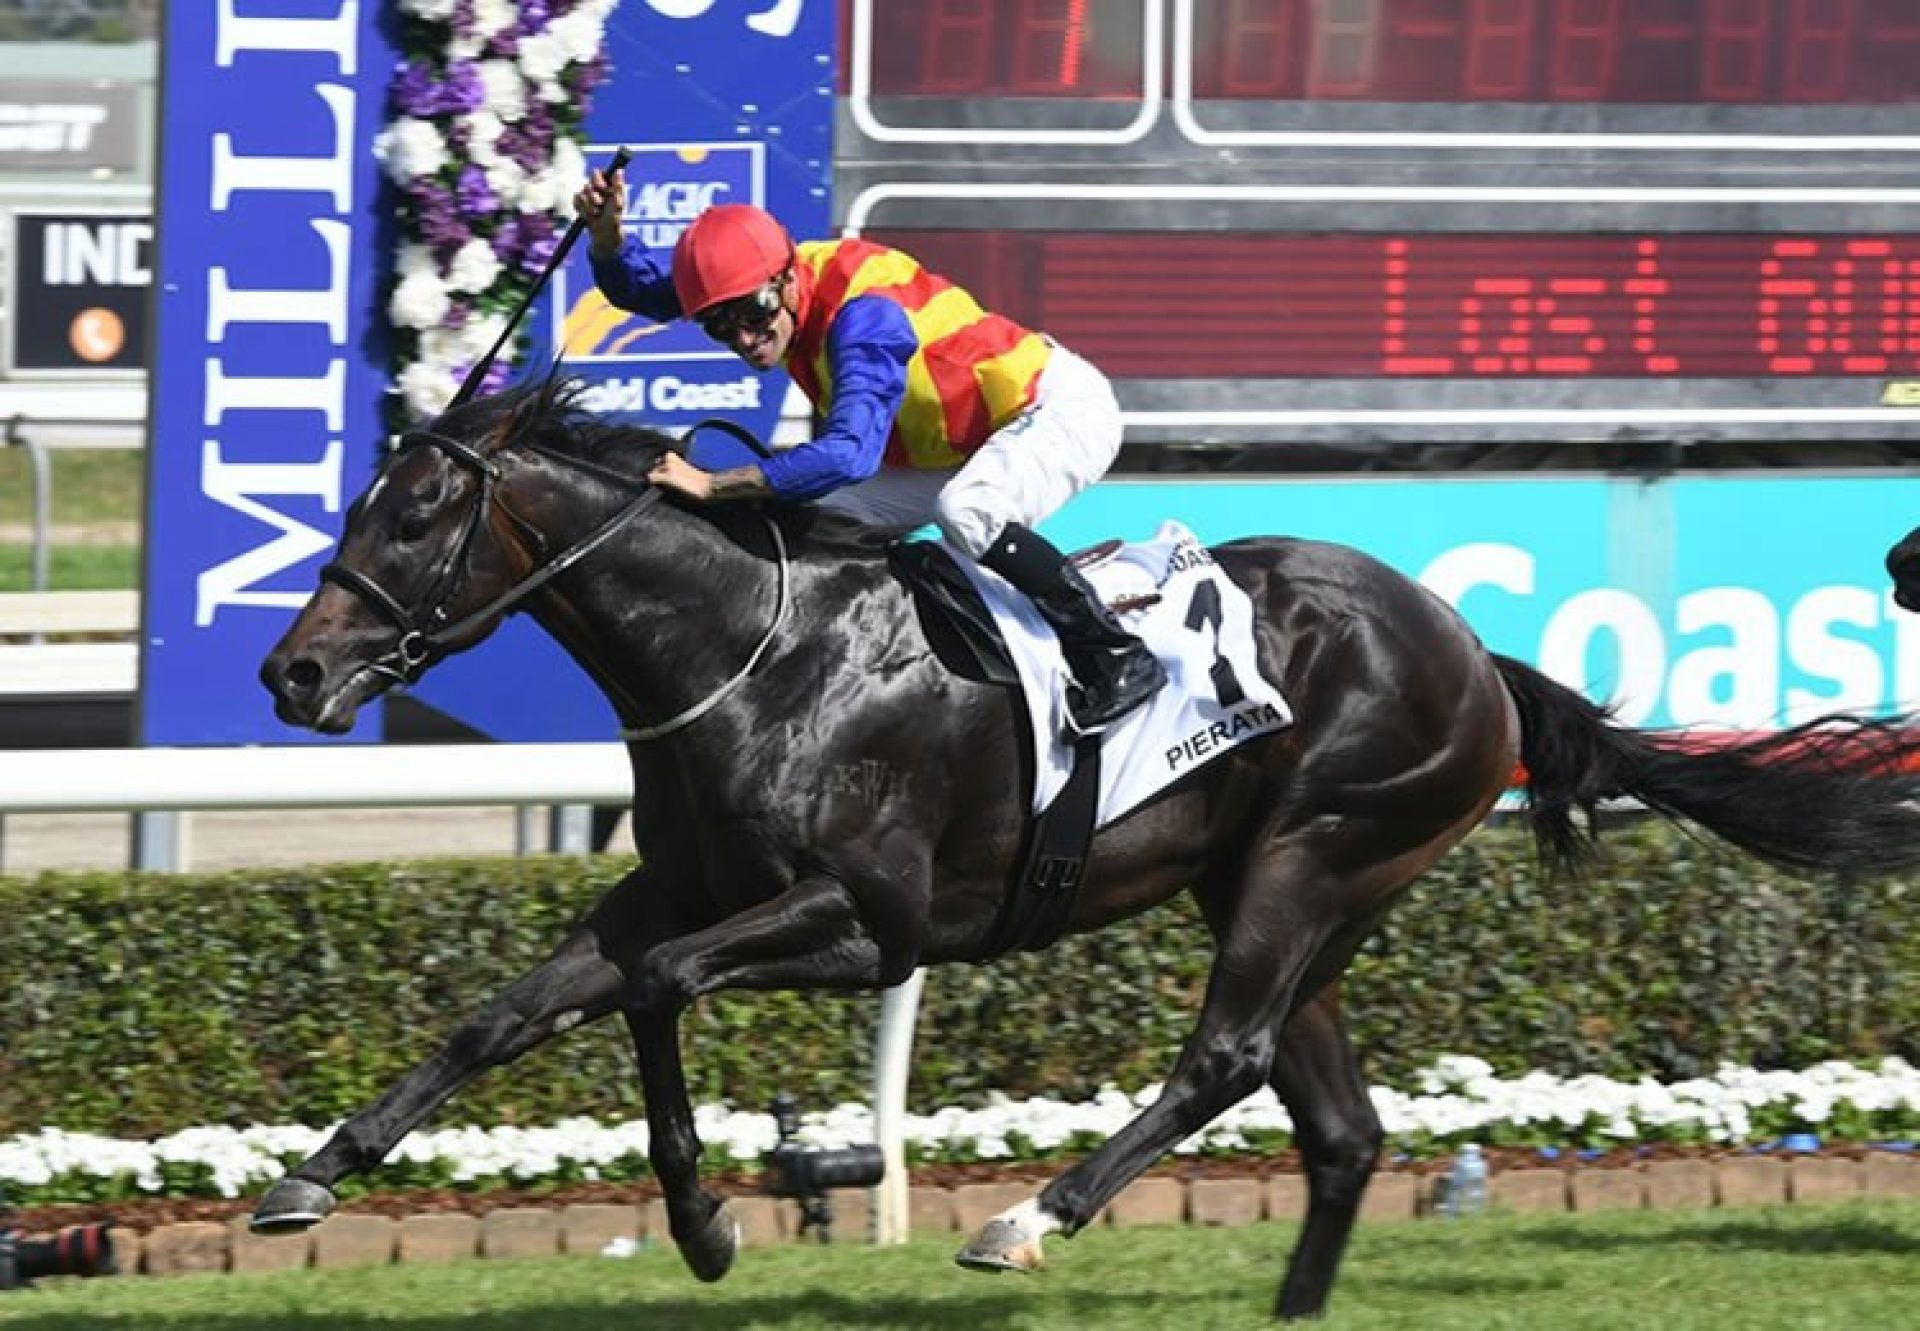 Pierata (Pierro) winning the Gold Coast Magic Millions 3YO Guineas